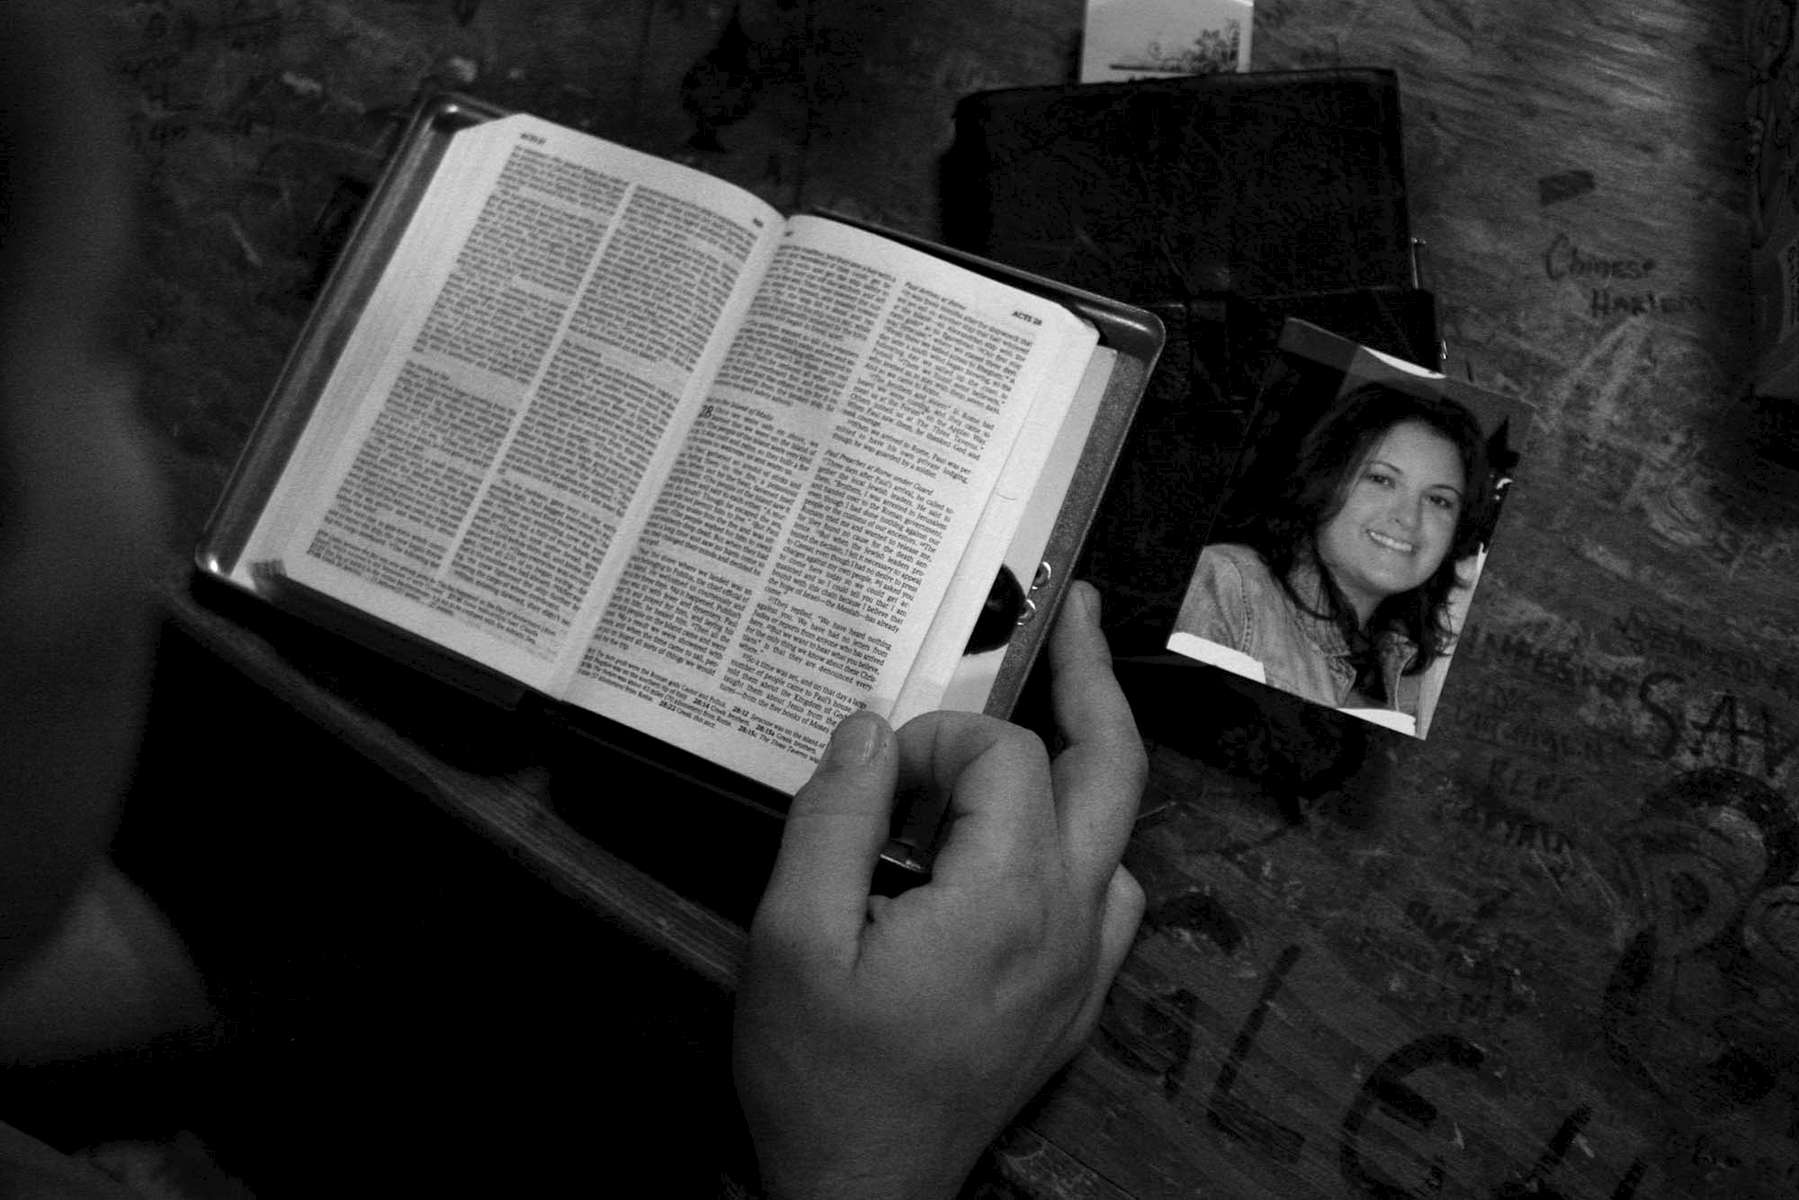 Alvin Boguess, 24, of Covington, reads the bible at Camp Taji in Iraq not long before heading out on his final convoy mission. {quote}I try to read the Bible before every mission,{quote} said Boguess who keeps a picture of his wife, Shannon at the side while he reads. {quote}It (the picture) reminds me of what I've got back home.{quote}